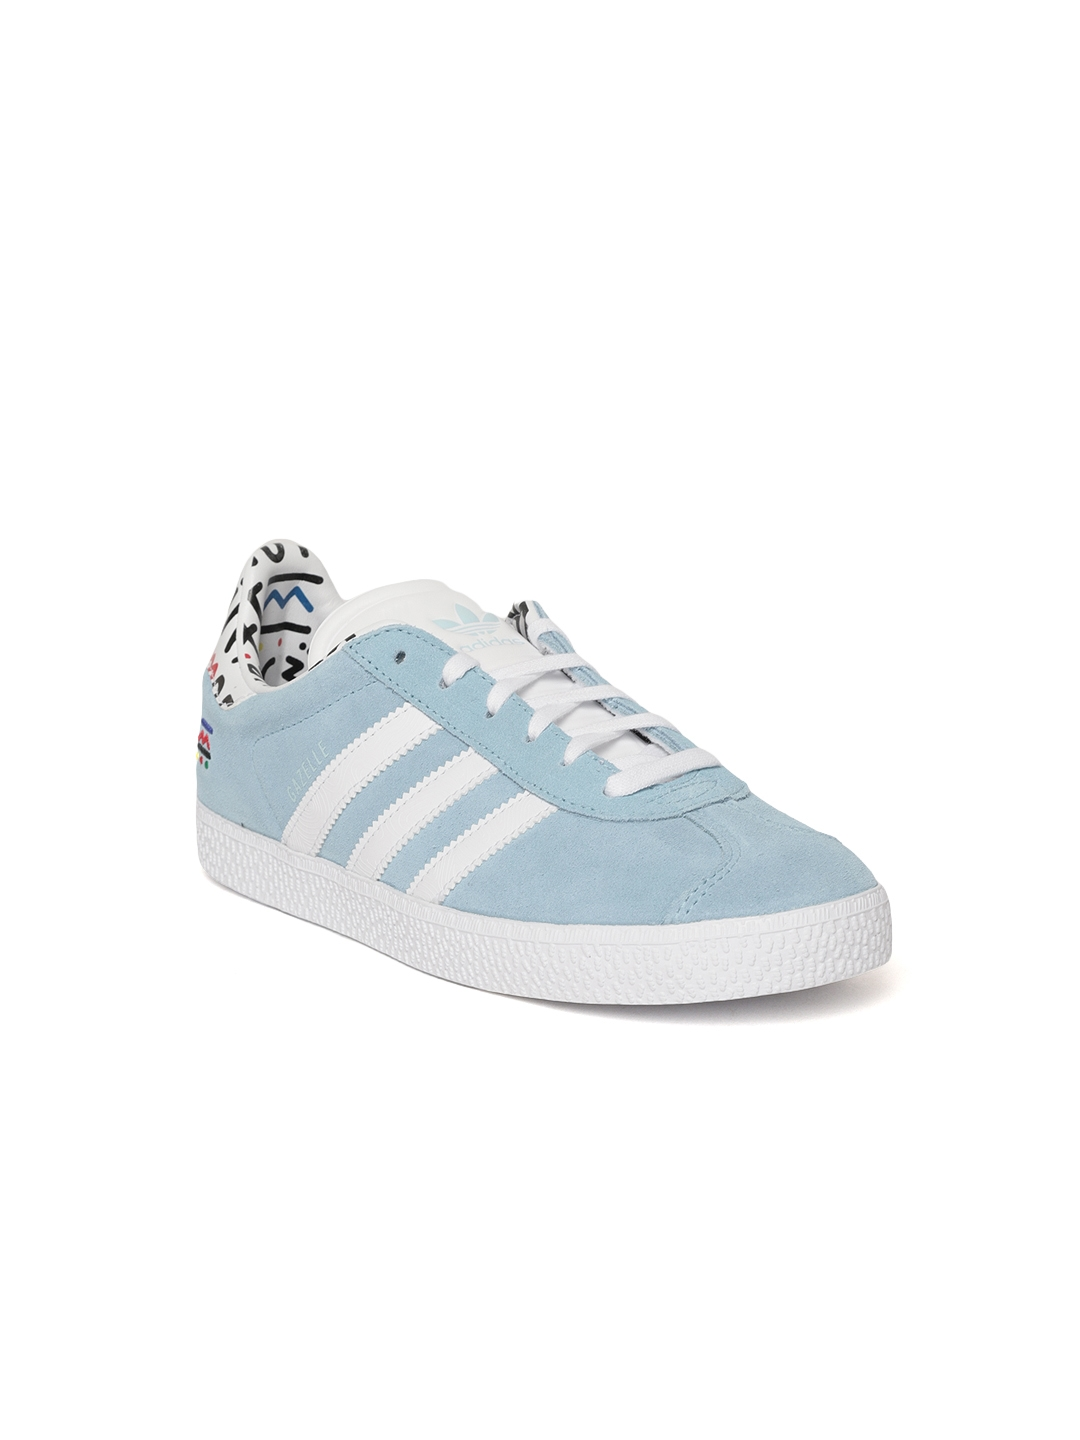 589c92fea9b3a5 Buy Adidas Originals Kids Blue Gazelle J Suede Sneakers - Casual ...